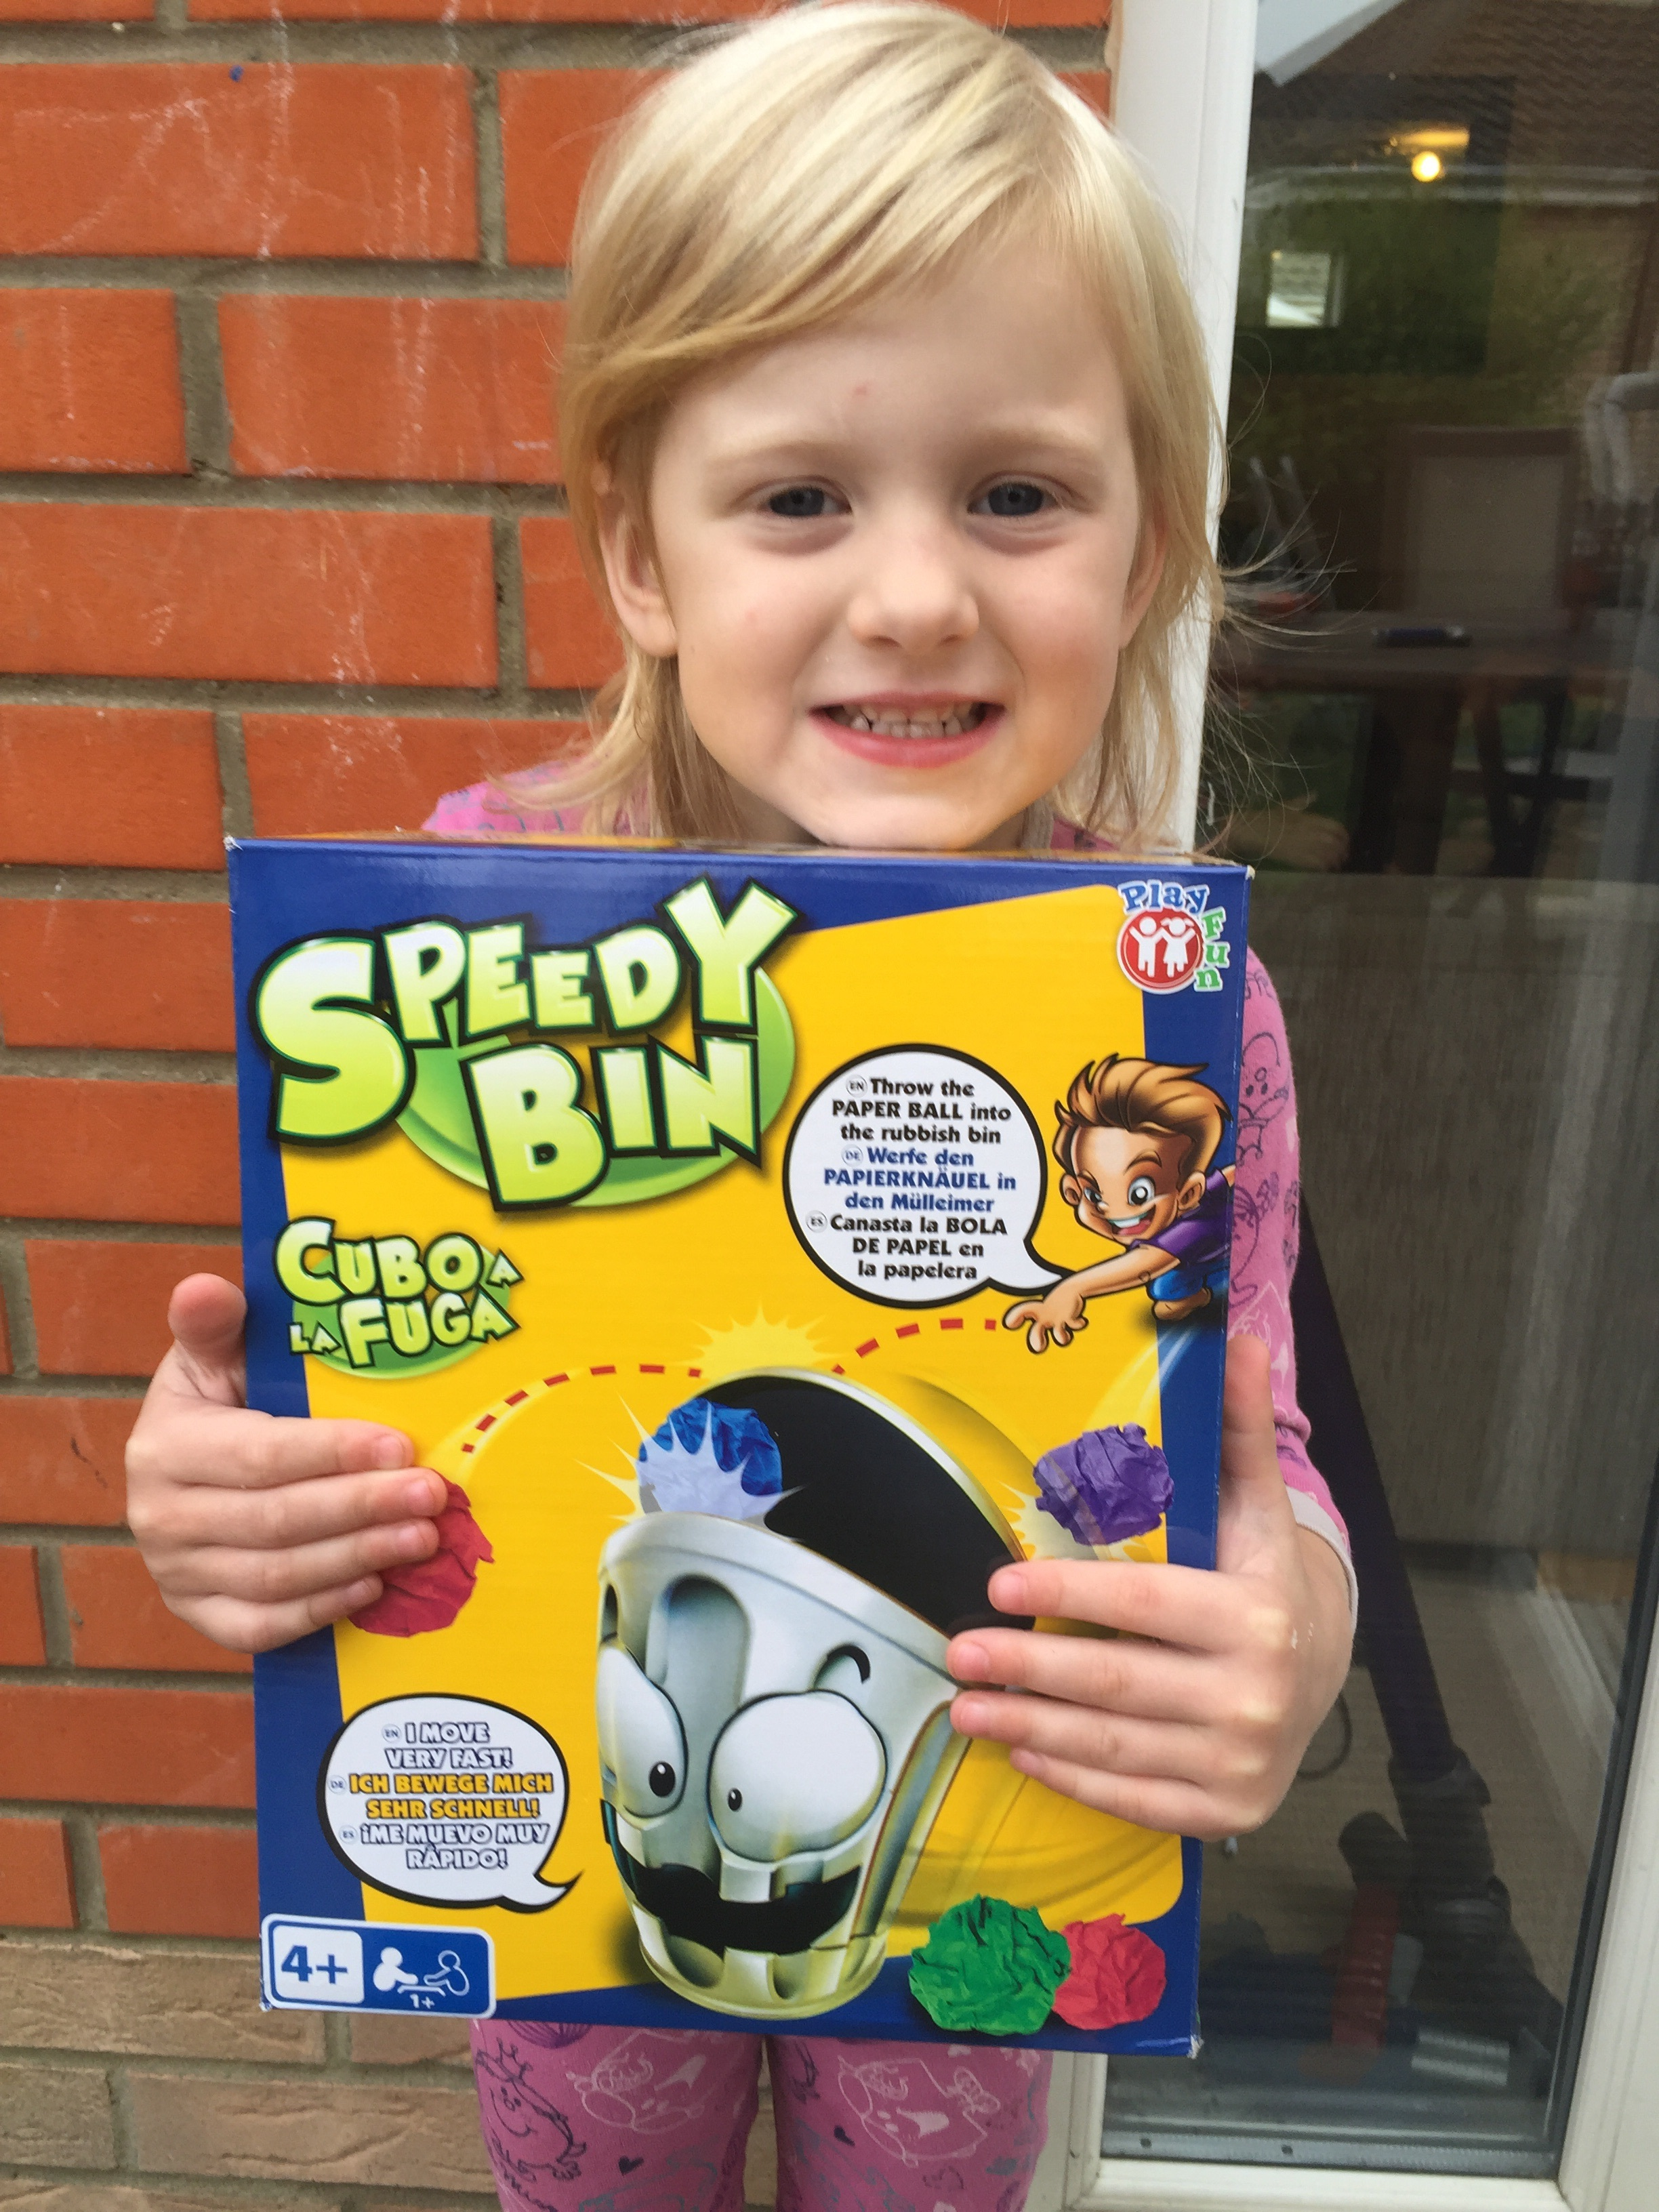 Ready. Steady. Throw  We love trying out and playing new games. Speedy Bin hasn't disappointed. It is a unique, interactive and fun game - one that the kids love.